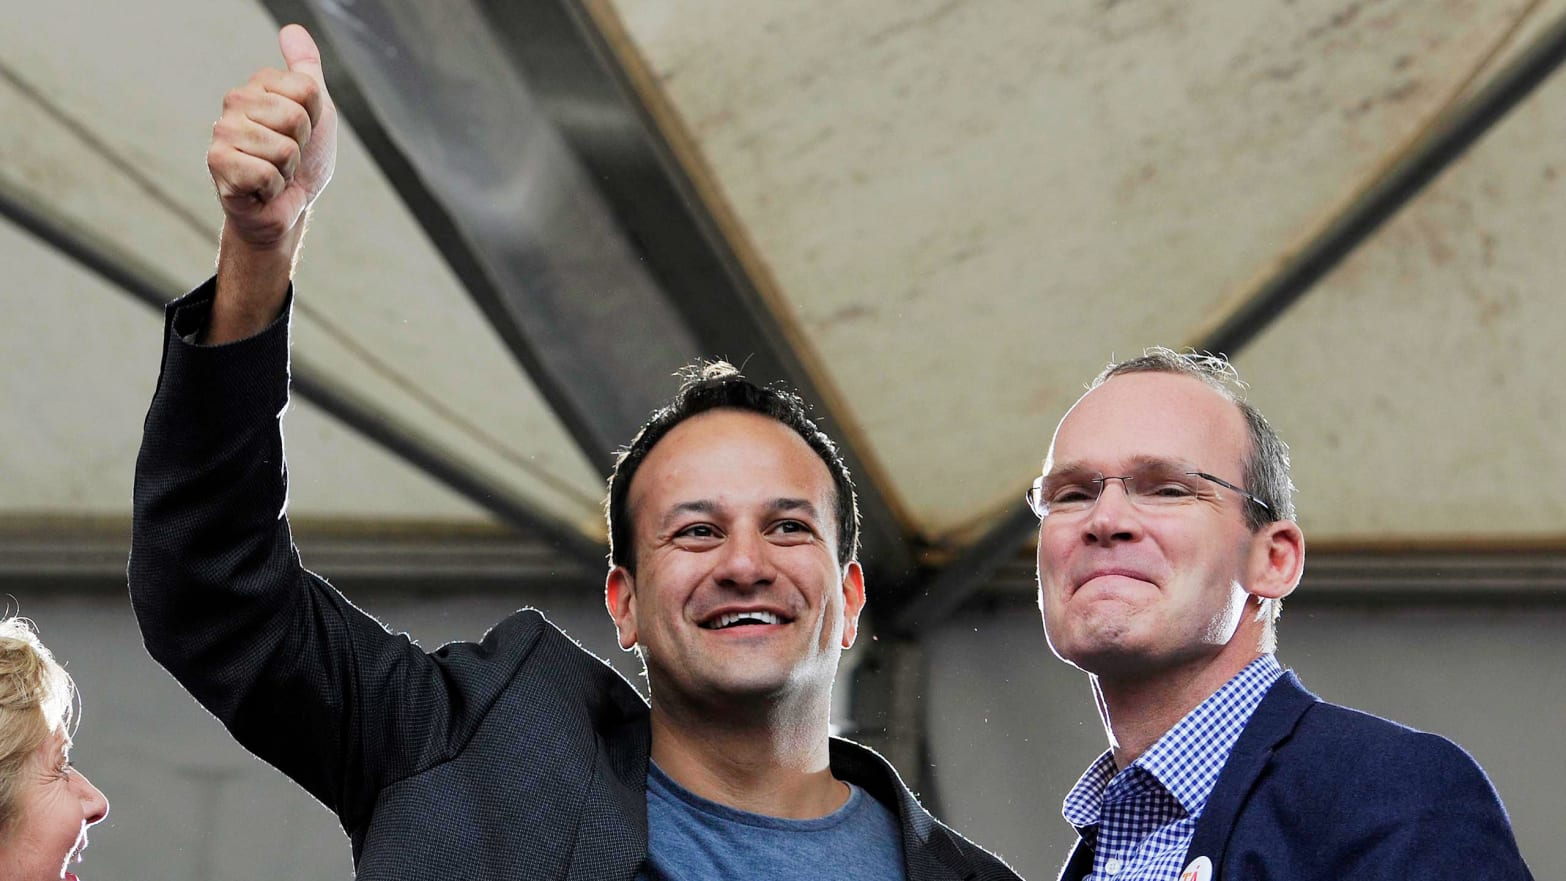 Leo Varadkar May Become Ireland's First Gay Prime Minister